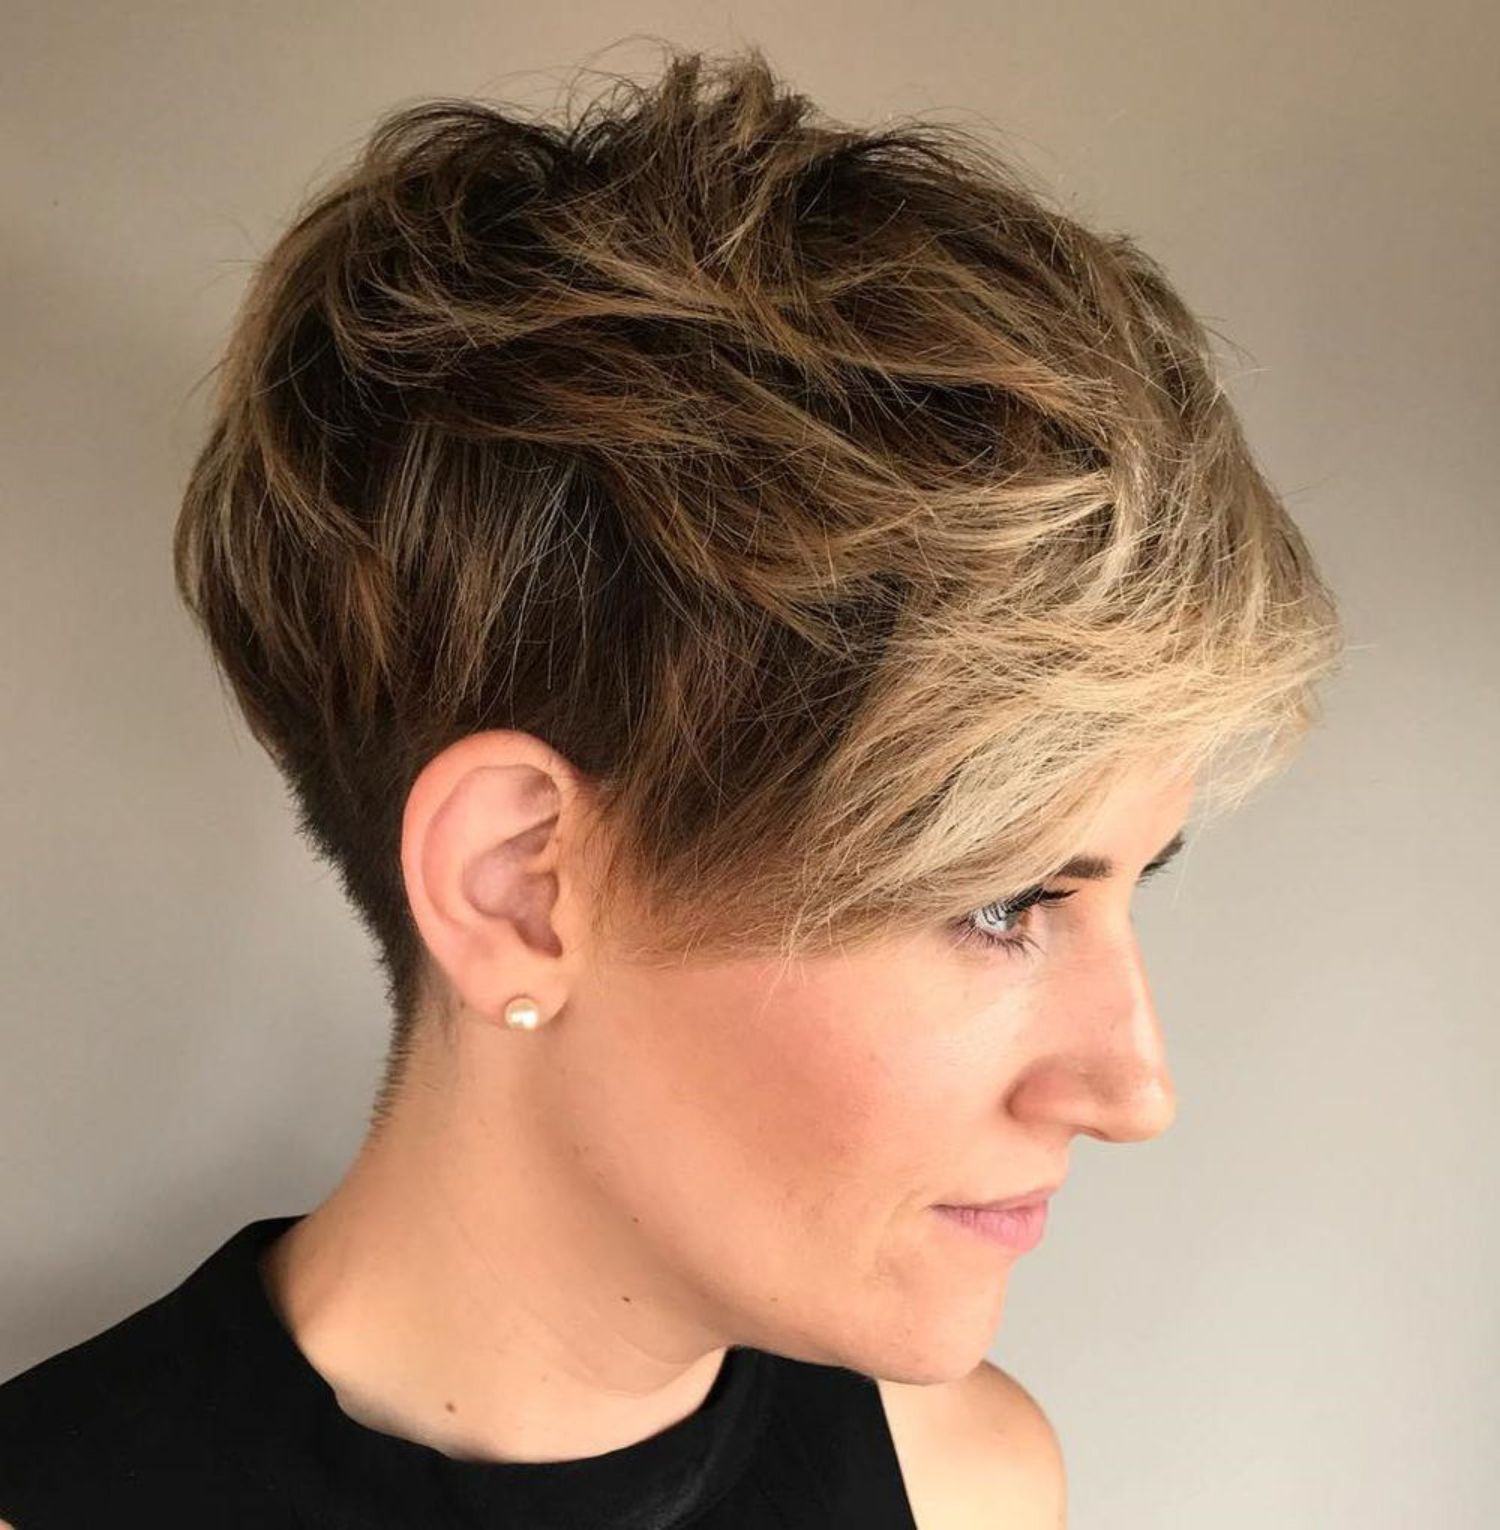 21+ Low maintenance pixie cut with highlights and lowlights ideas in 2021